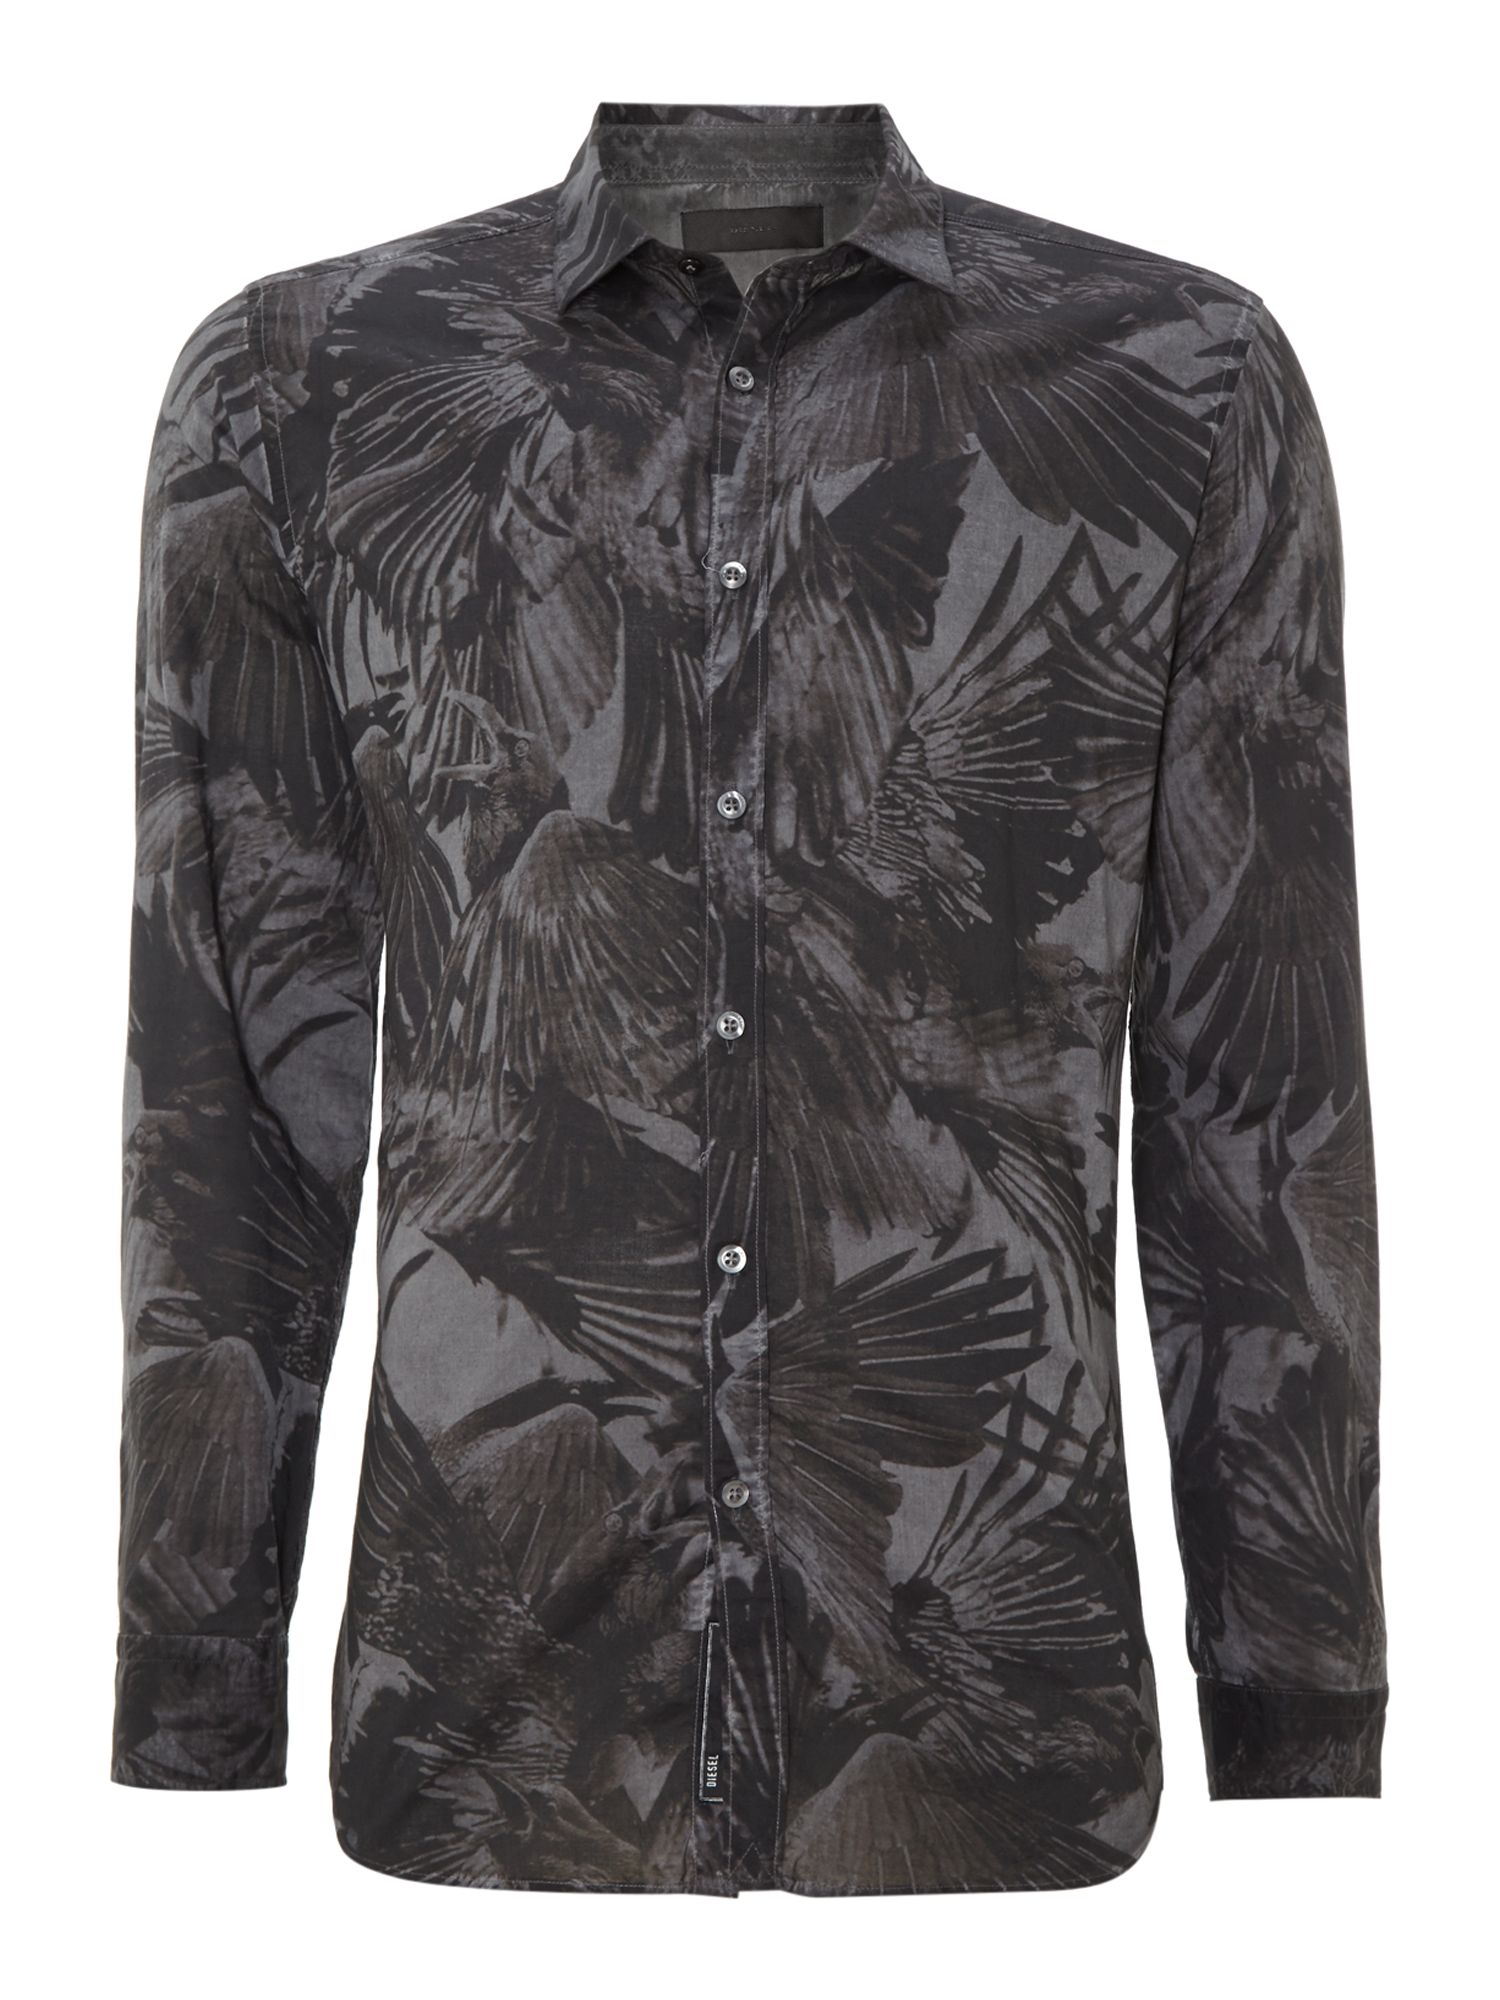 All over crow print shirt